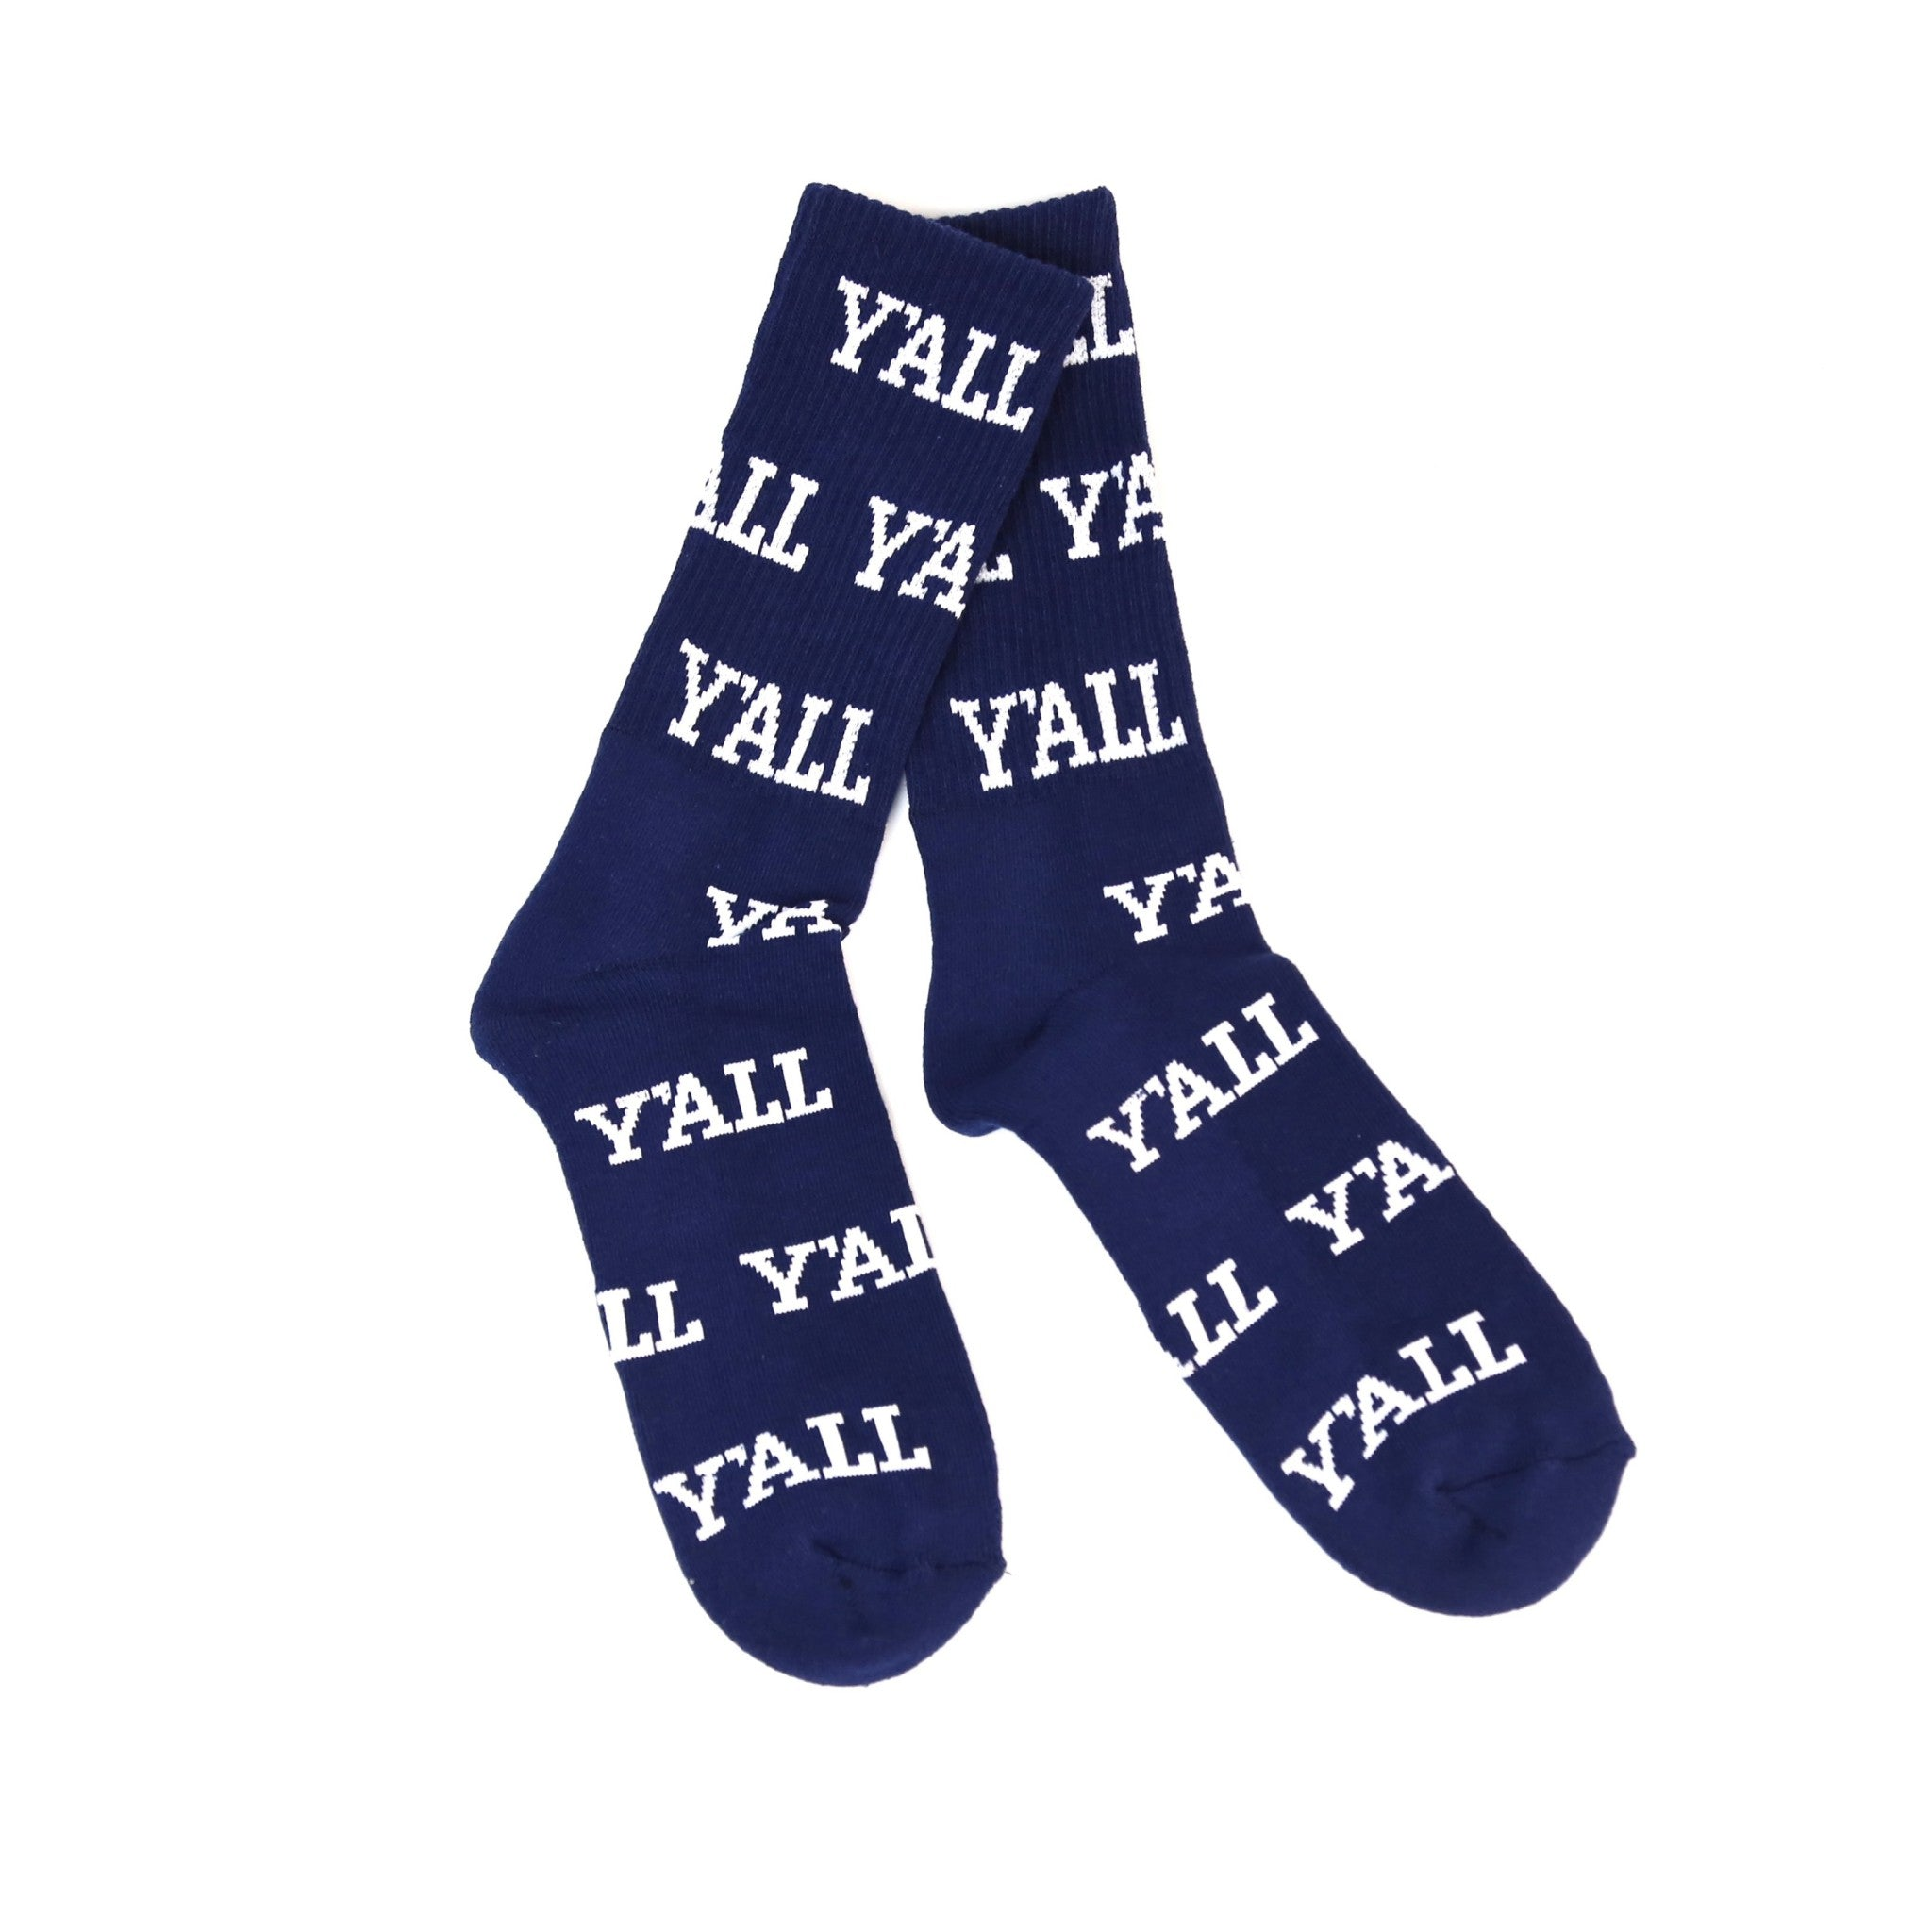 Y'ALL Socks (Navy and White)